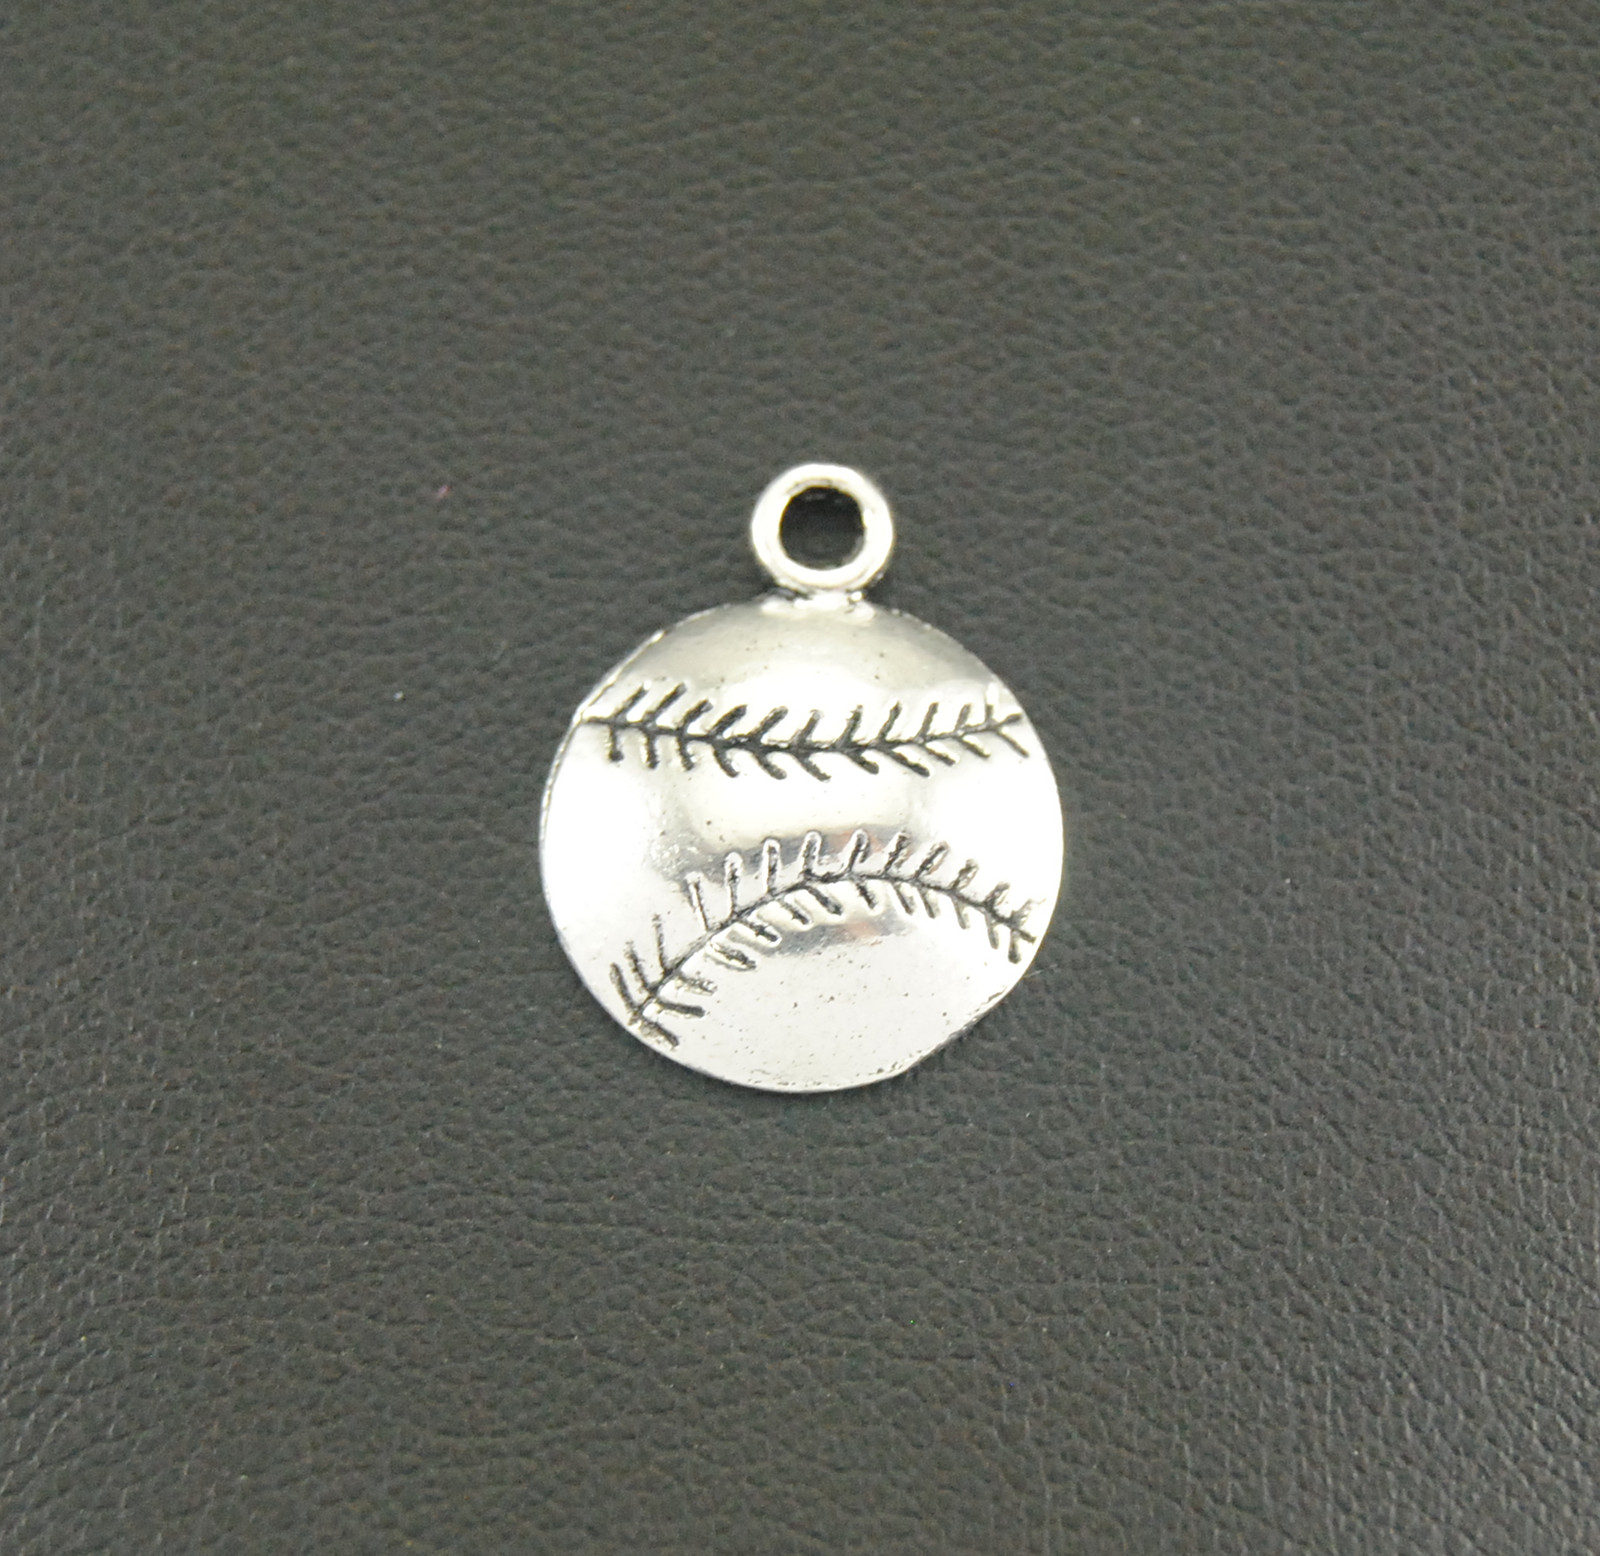 30pc Antique Silver Tone Baseball Softball Charms Metal Bracelet Necklace  Jewelry Findings A505(china (